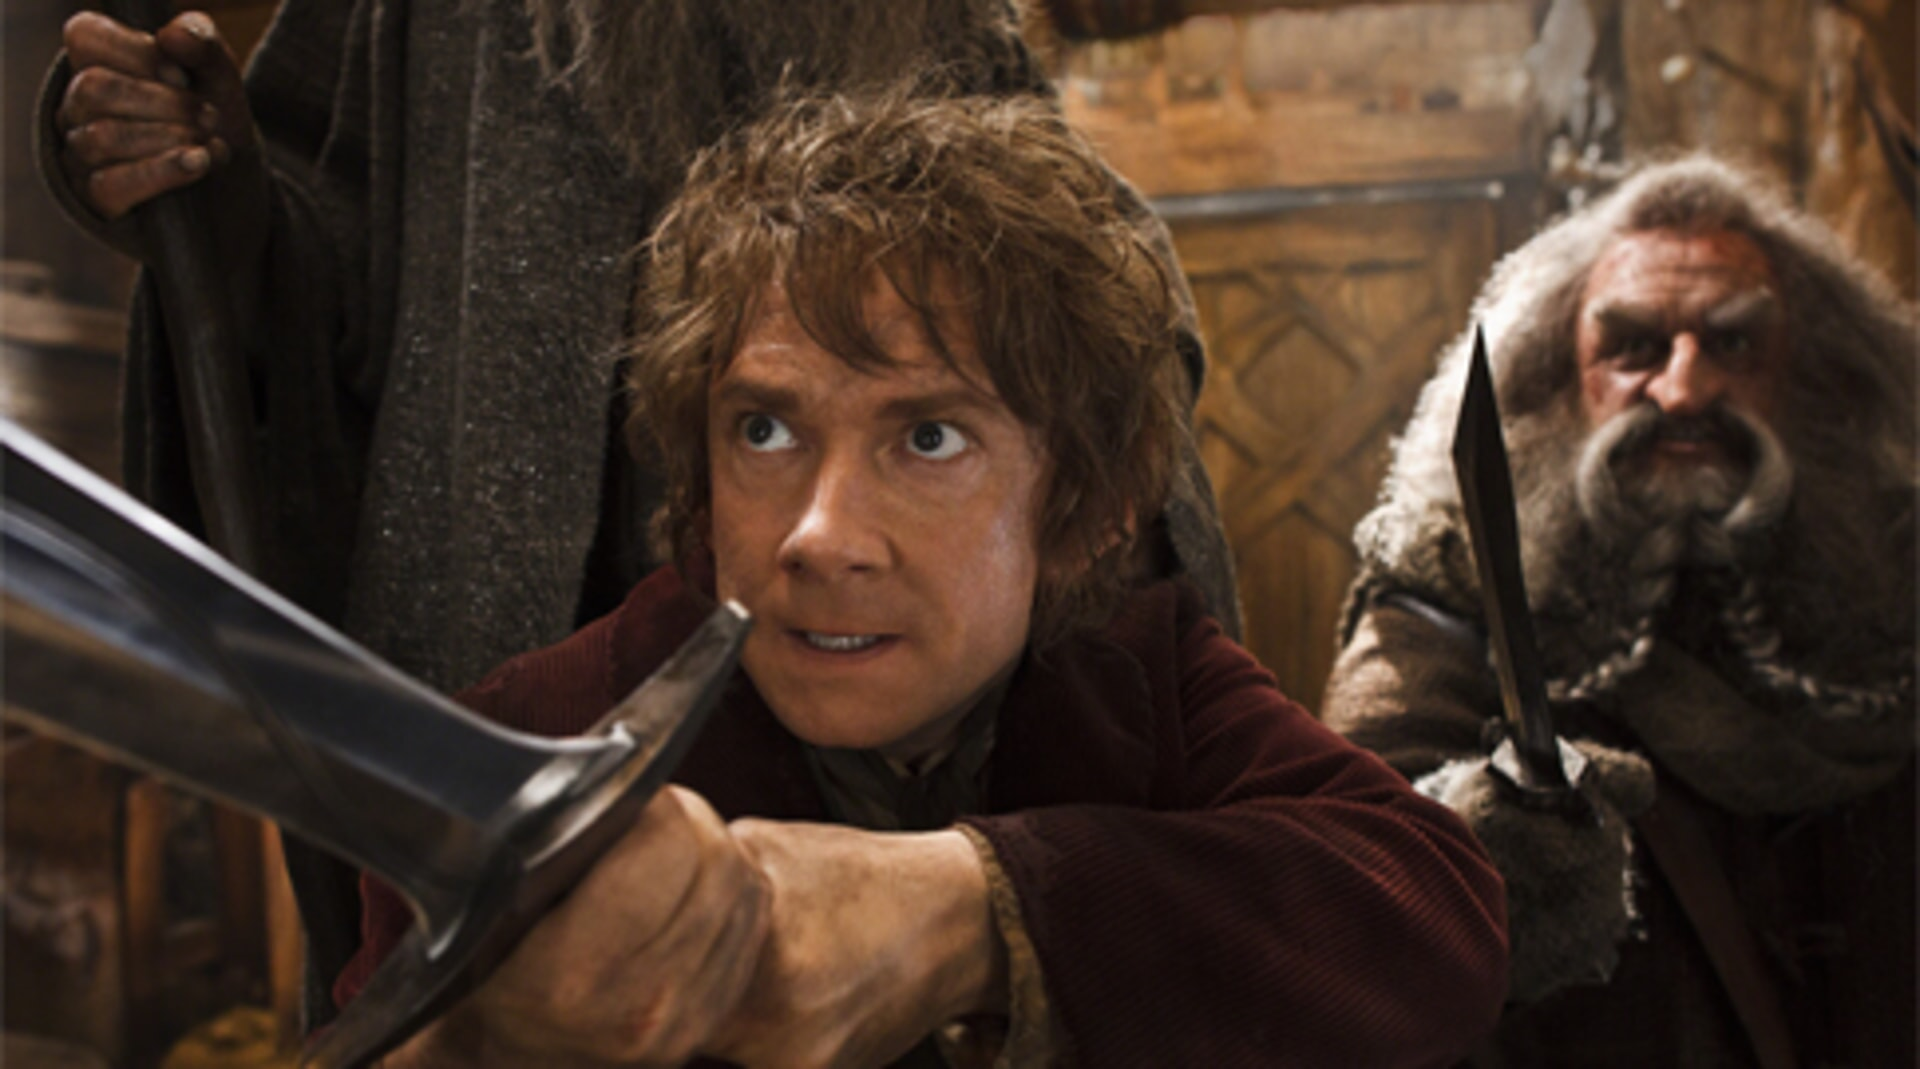 The Hobbit: The Desolation of Smaug - Image 41